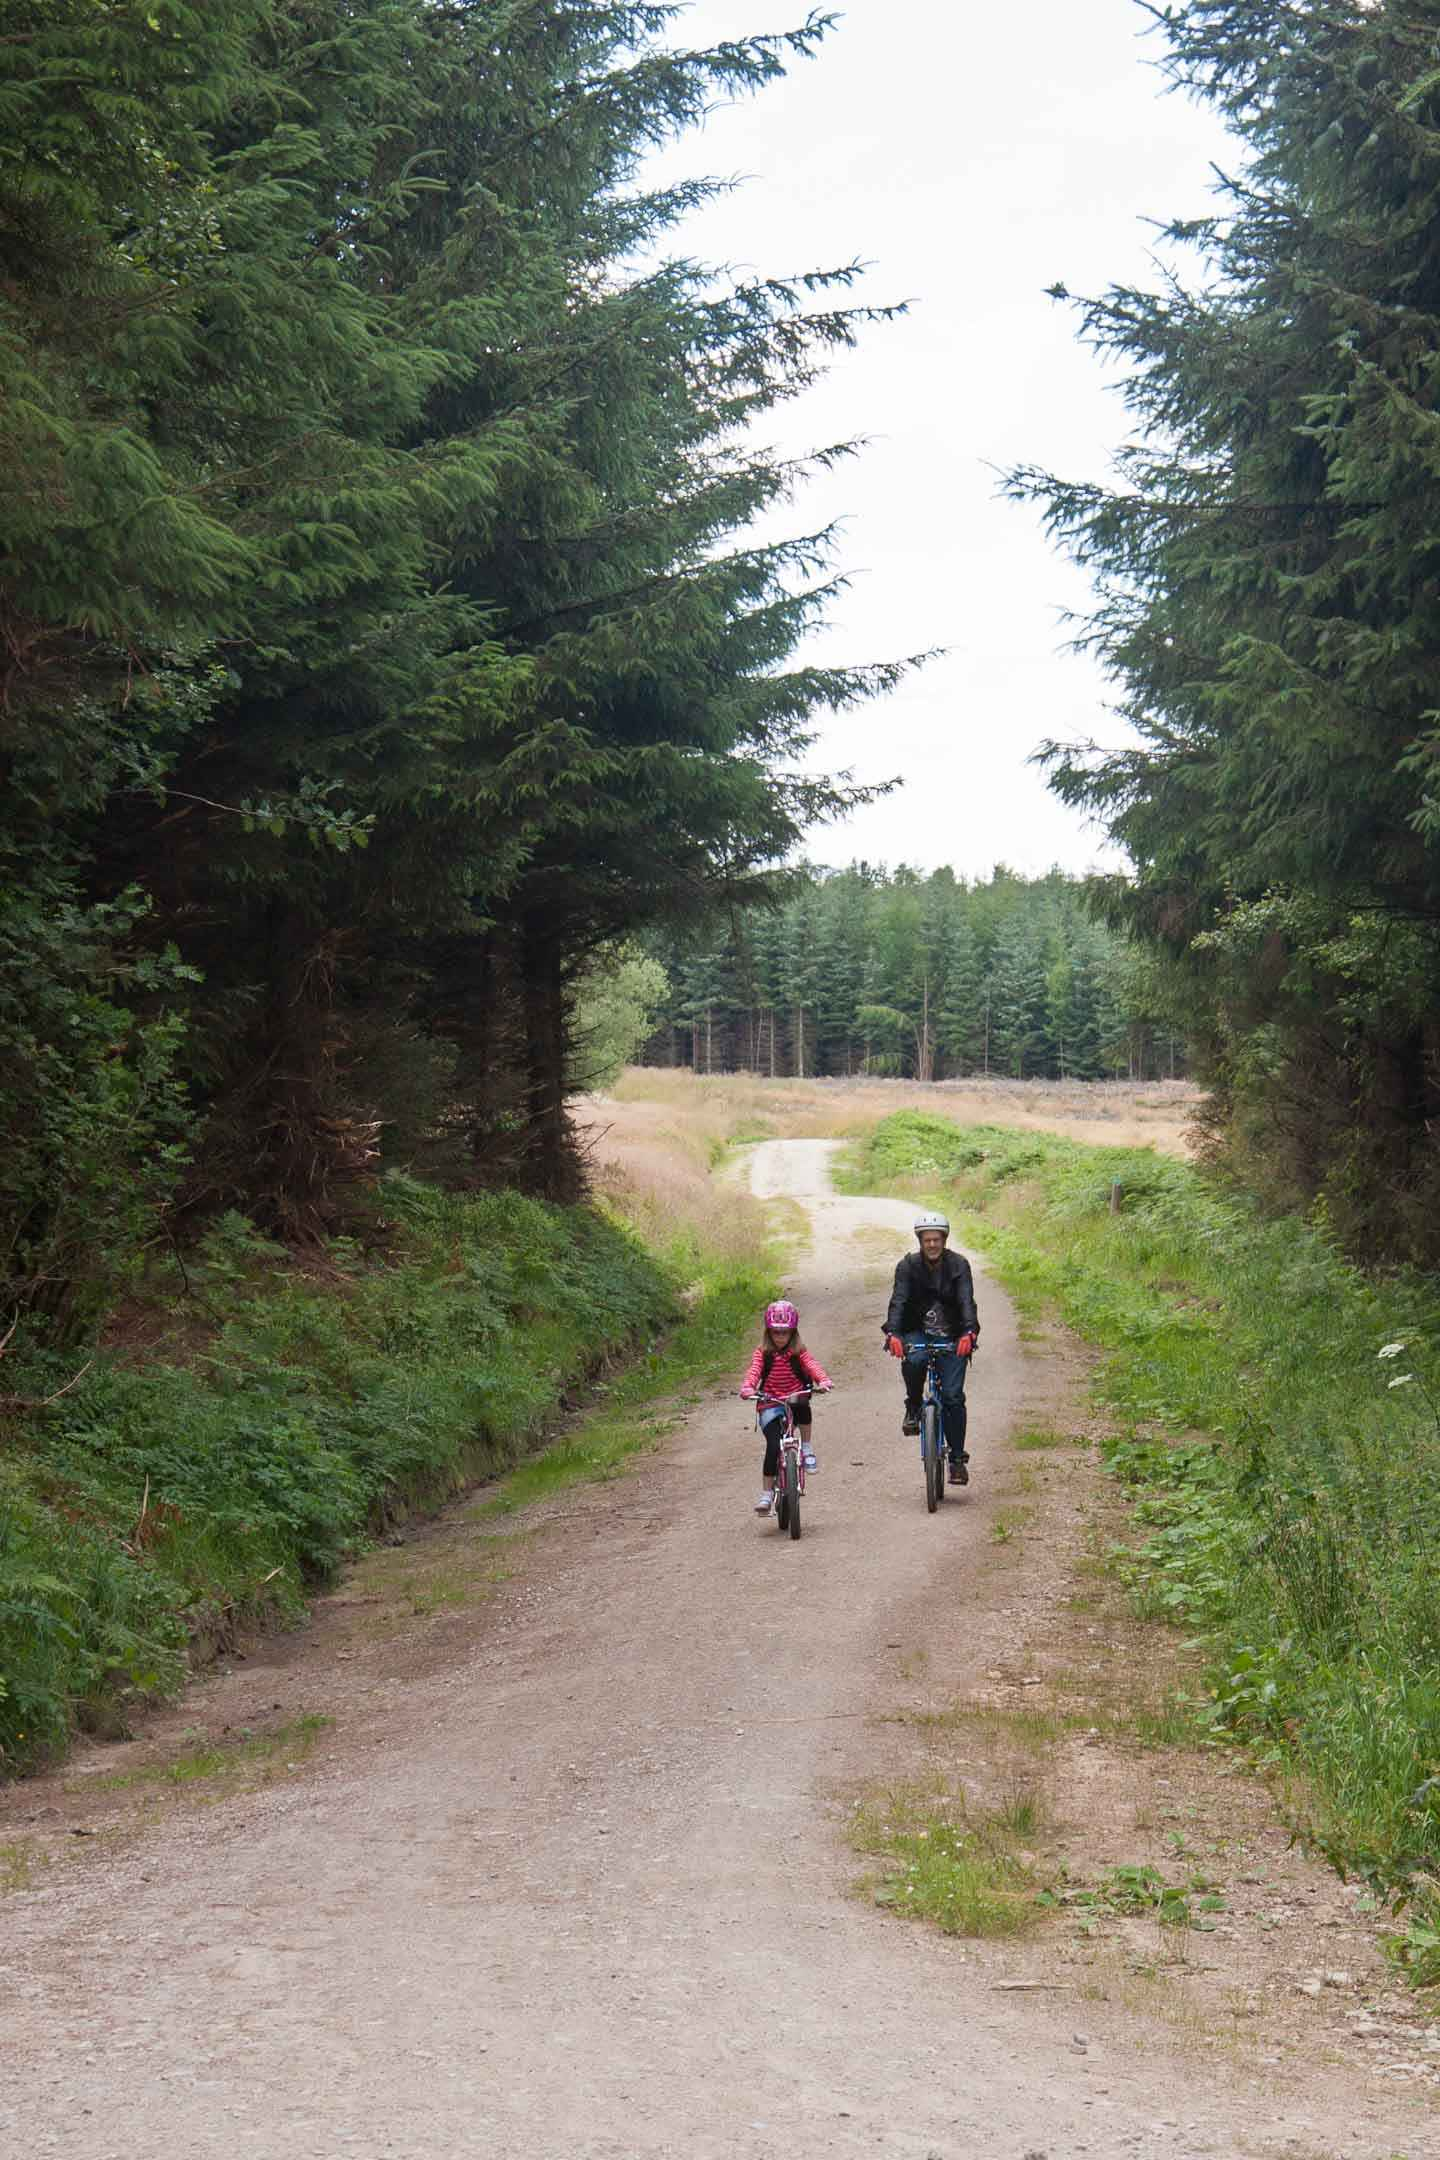 Mountain Biking for beginners; Favourite Family Cycle Routes on Falcondale Life blog. Mountain biking beginner tips to suit families and friends. Find UK MTB trails and off road cycling experiences in forests or bike skills areas. Get your bike ready, enjoy nature all around and start learning how to go mountain biking from scratch. Image Description: Father and child cycling on a forest trail.